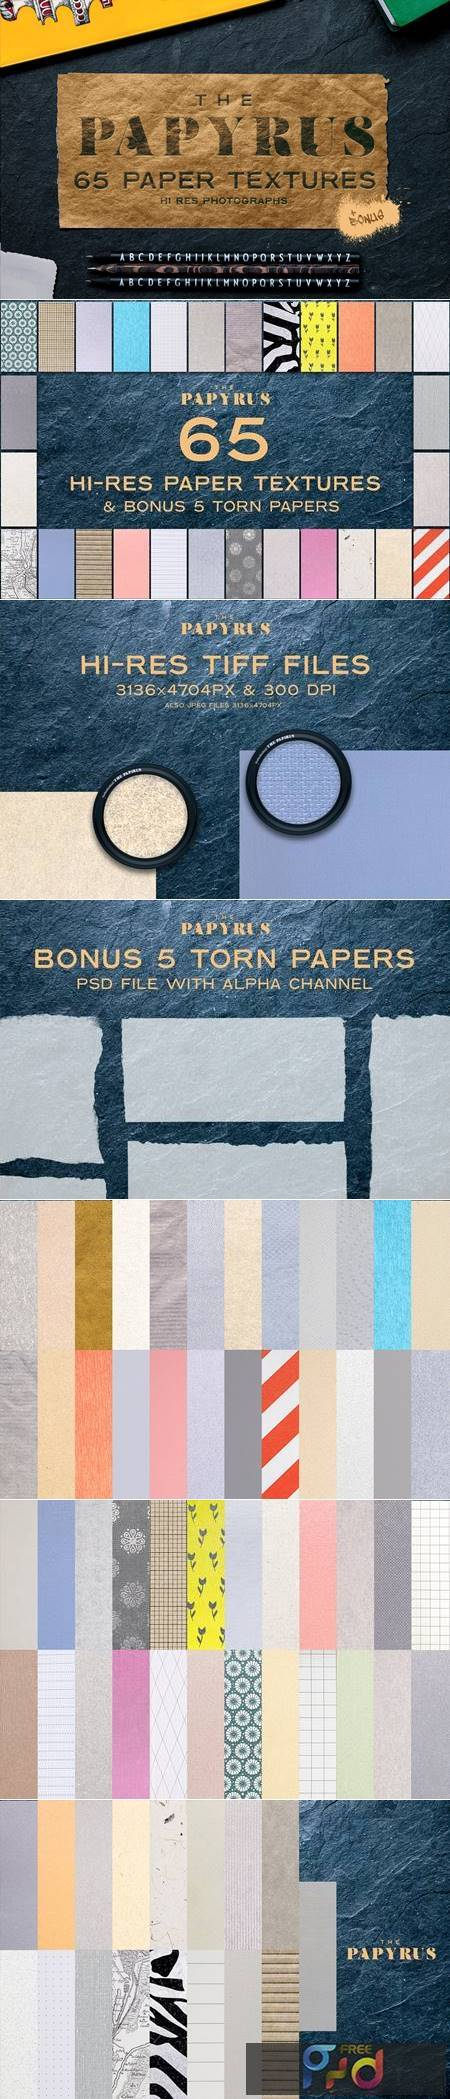 The Papyrus - 65 Paper Textures 4930218 1